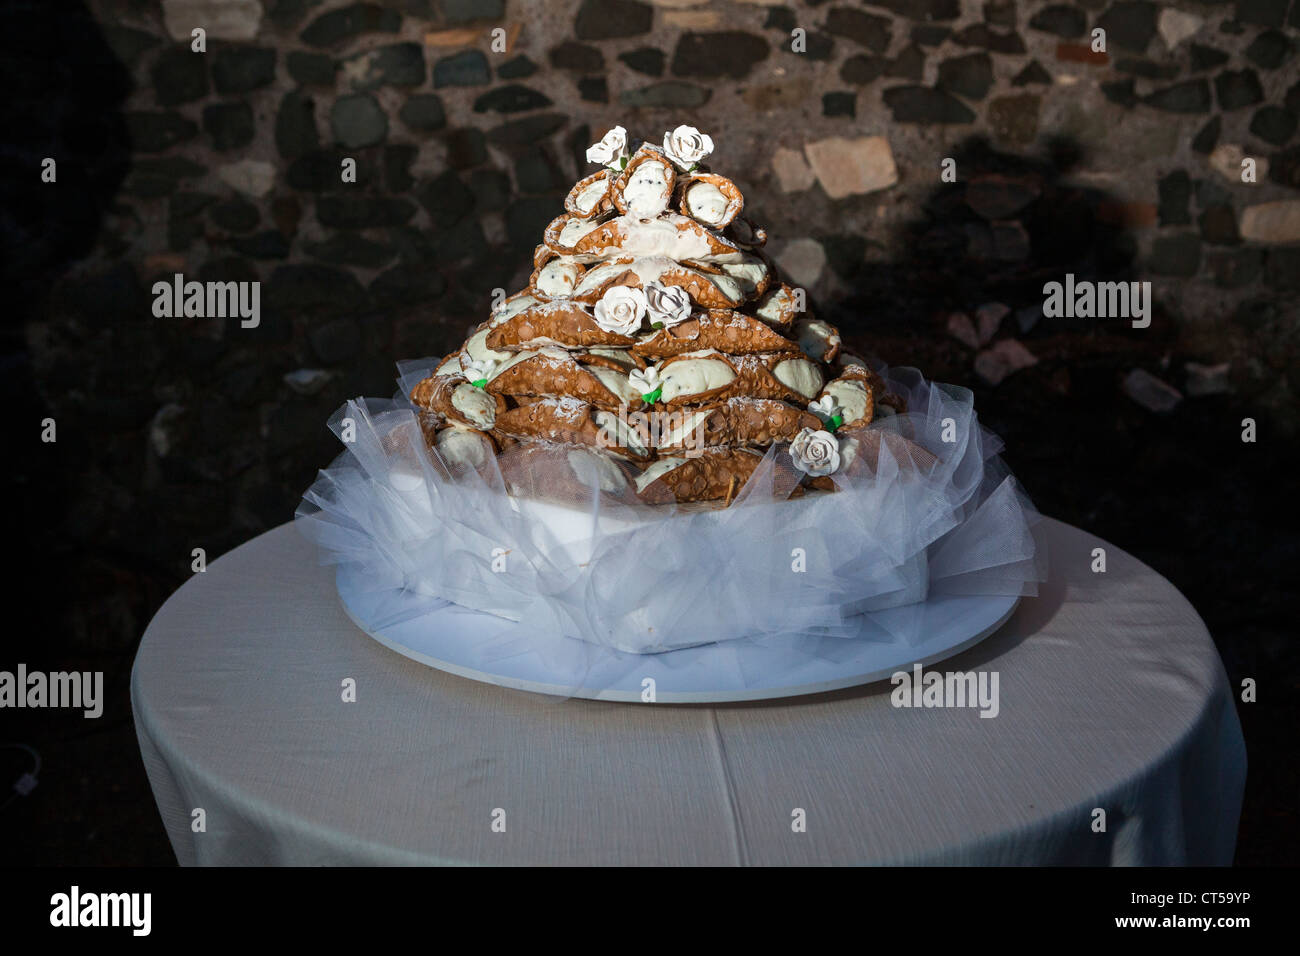 Traditional Cannoli Cake on table at wedding reception Stock Photo     Traditional Cannoli Cake on table at wedding reception